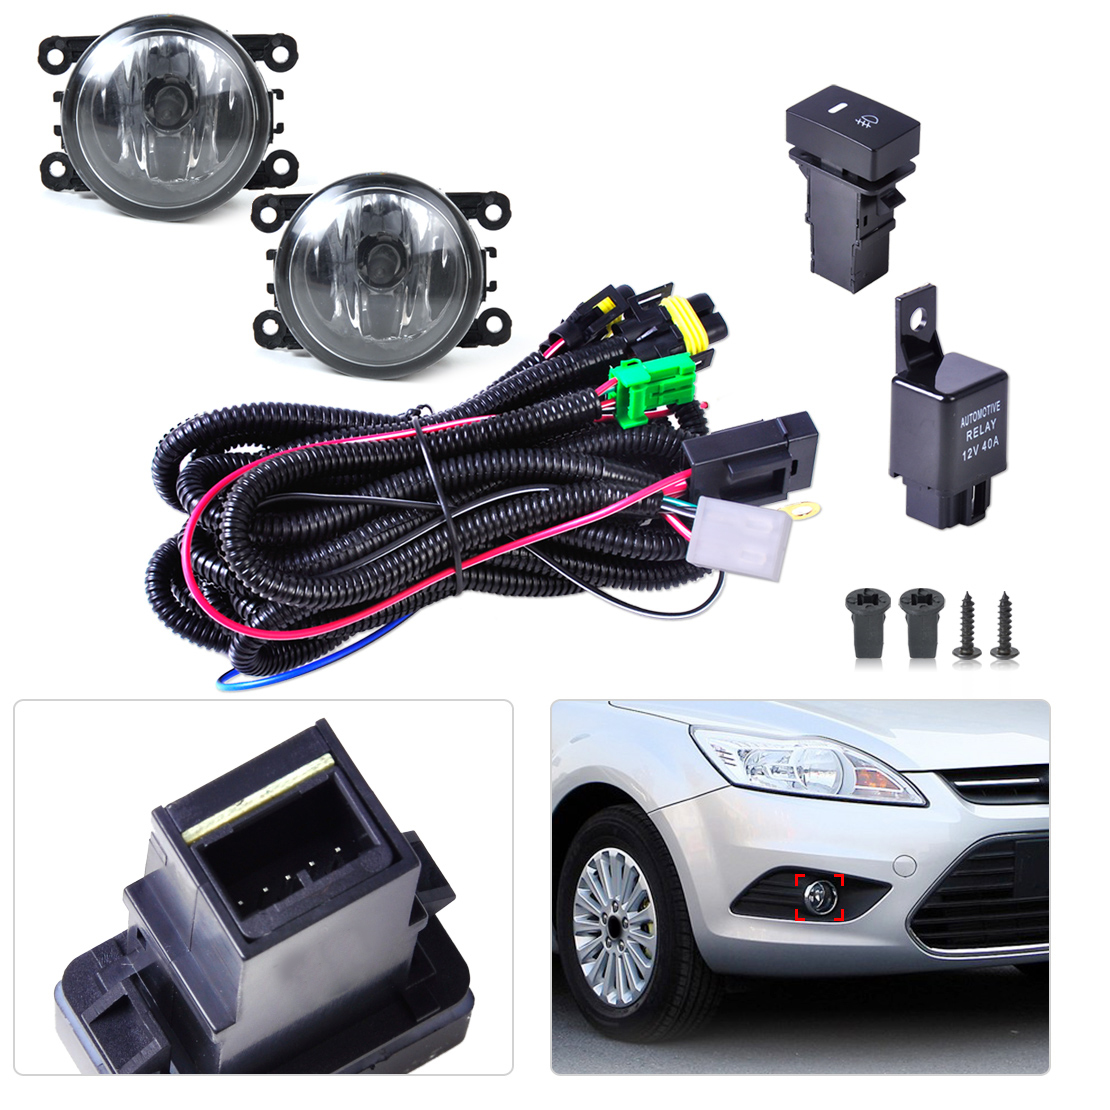 Wiring Harness Sockets Switch 2 H11 Fog Lights Fit Ford